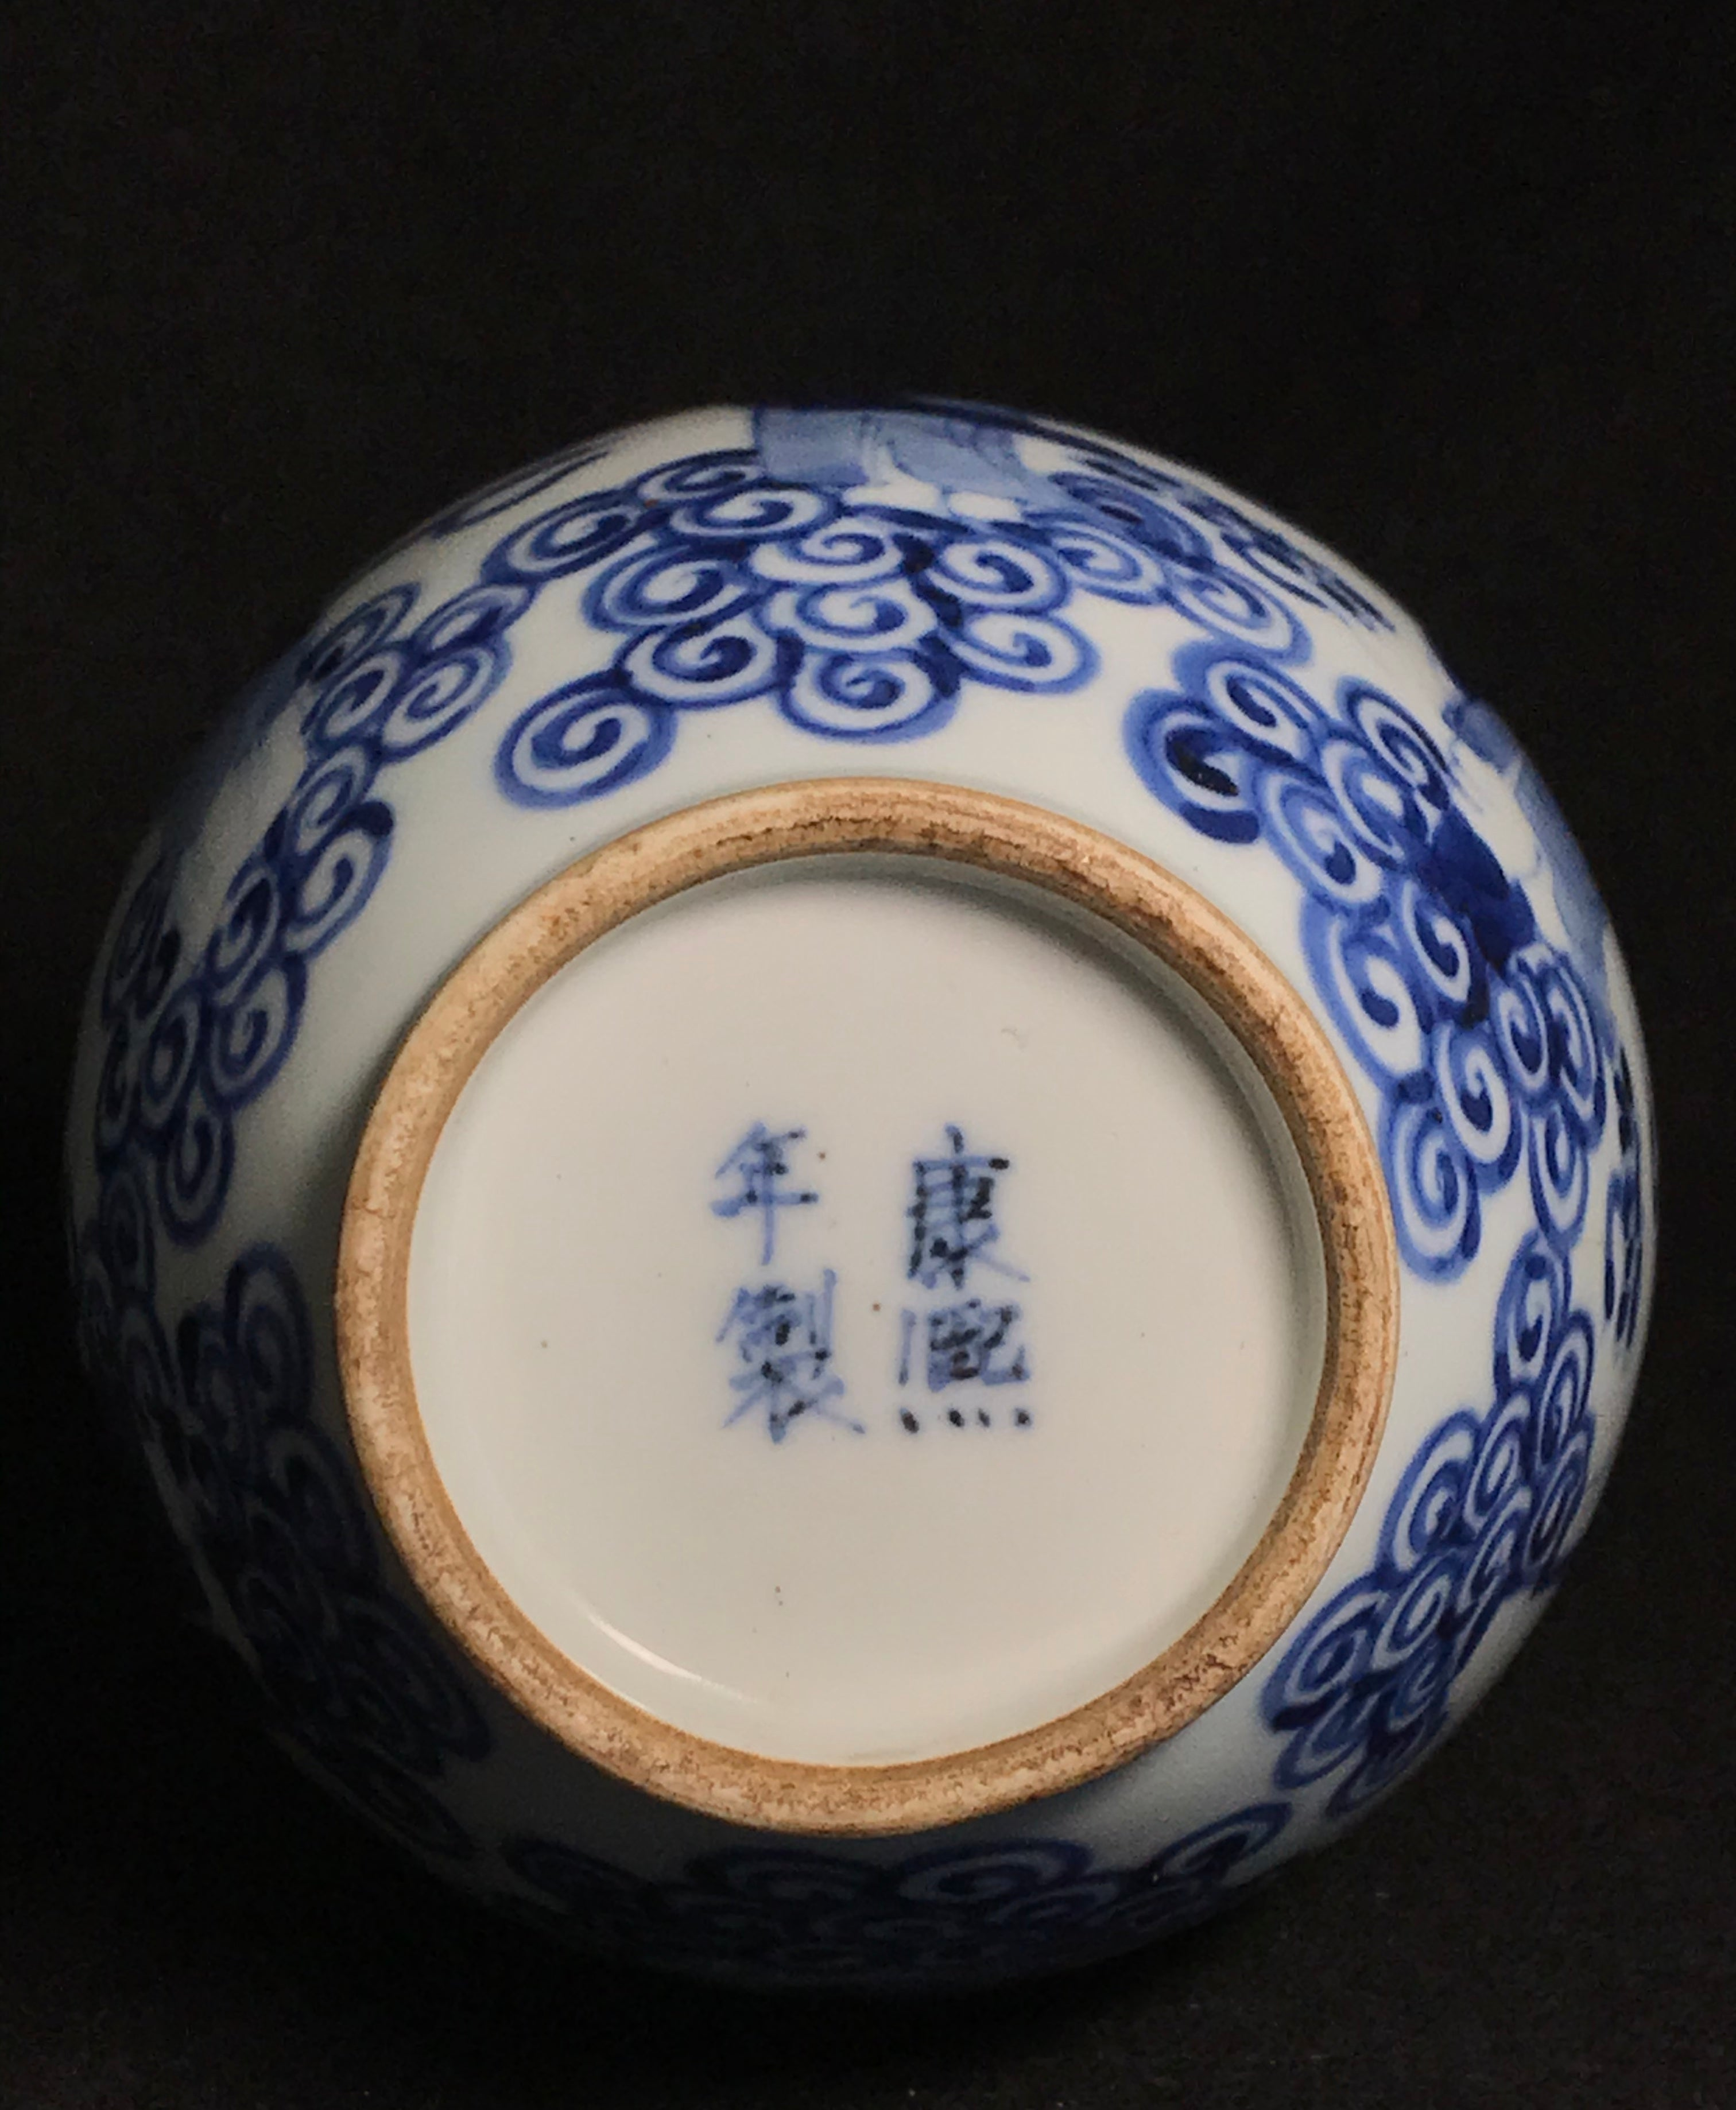 Qing Dynasty Blue and White Vase - 10 Dynasties